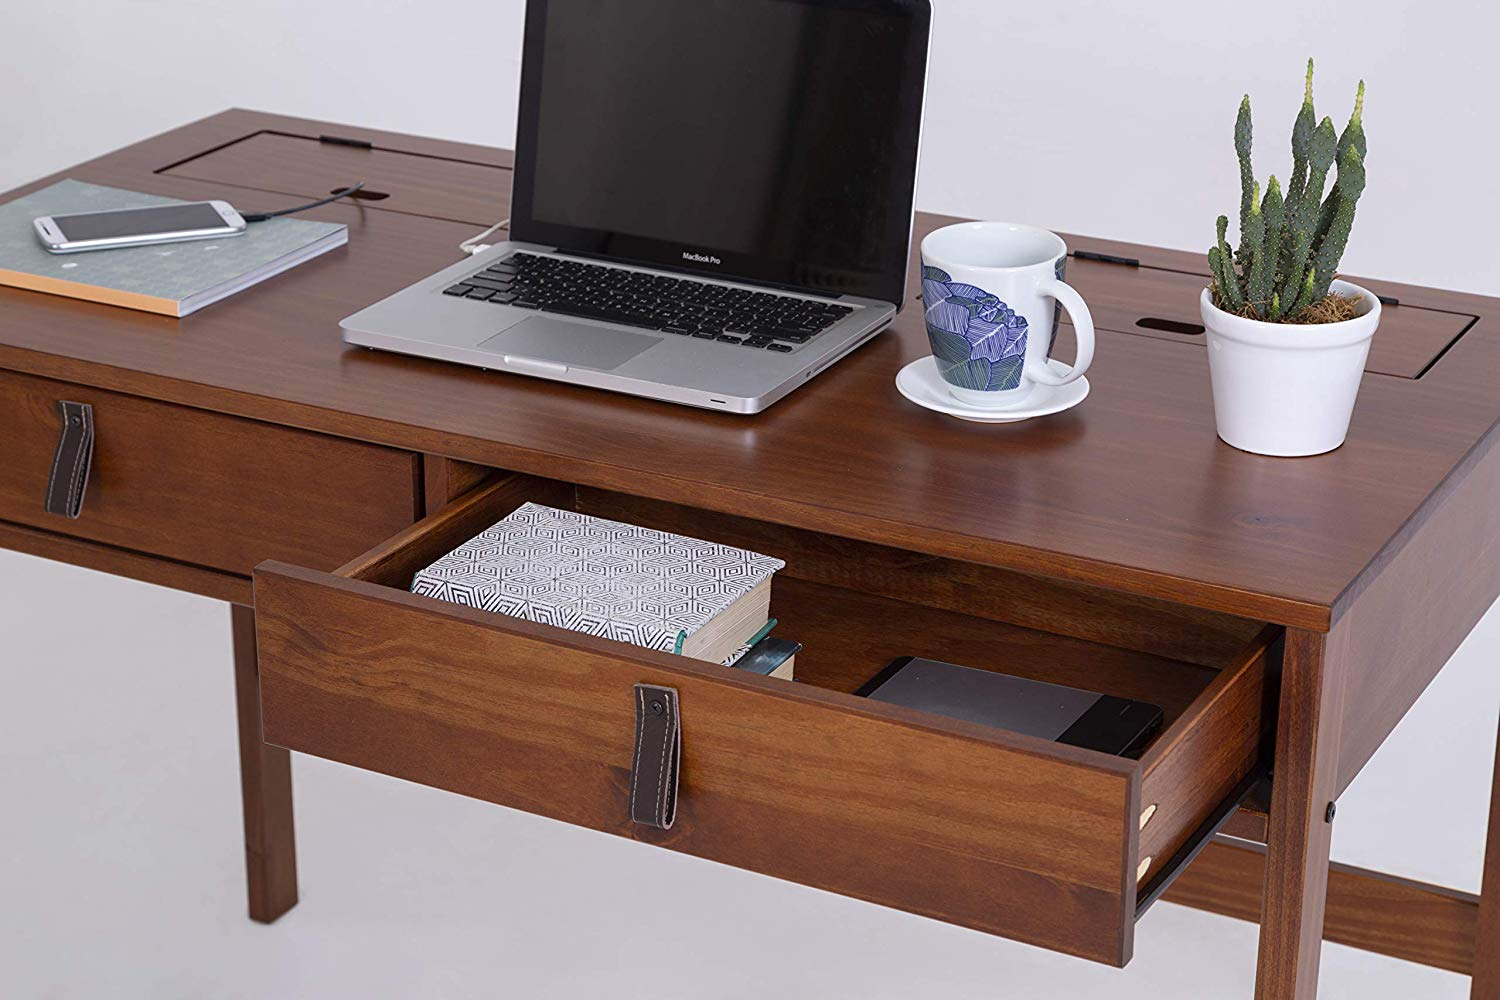 Memomad Bali Home Office Desk with Drawers (Caramel) - memomad.store